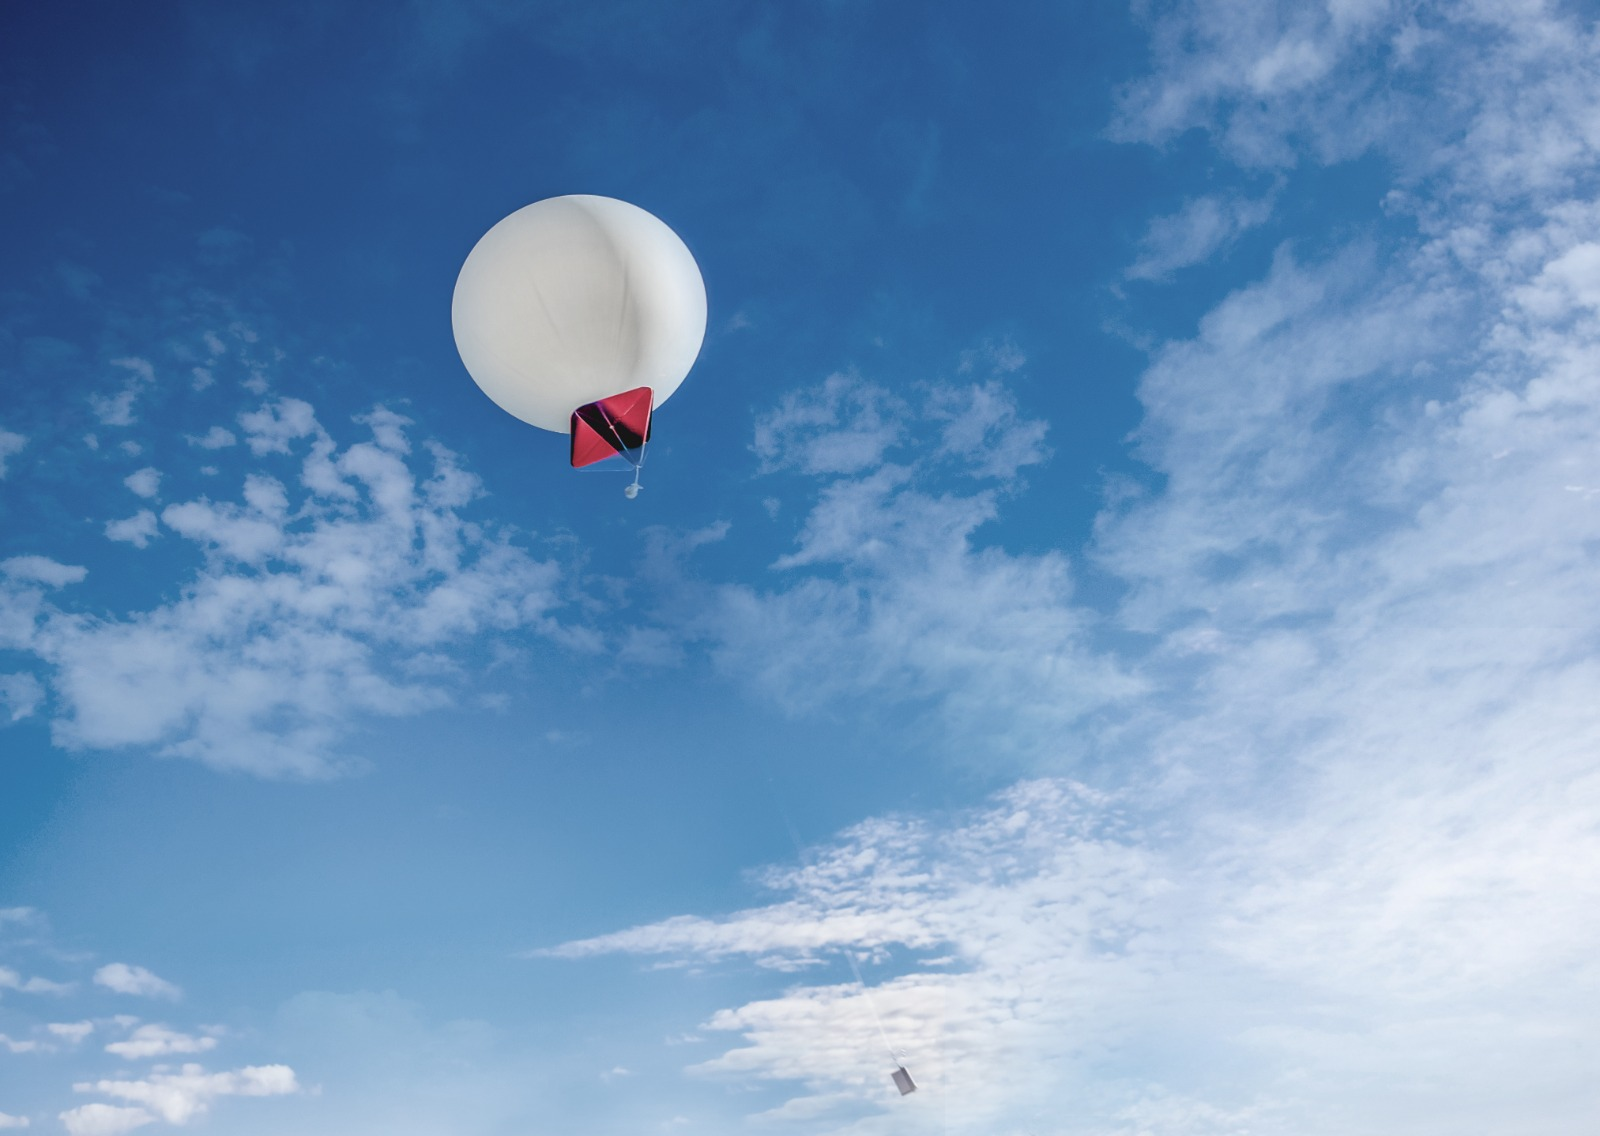 High Hopes plans to extract atmospheric CO2 with hot air balloons